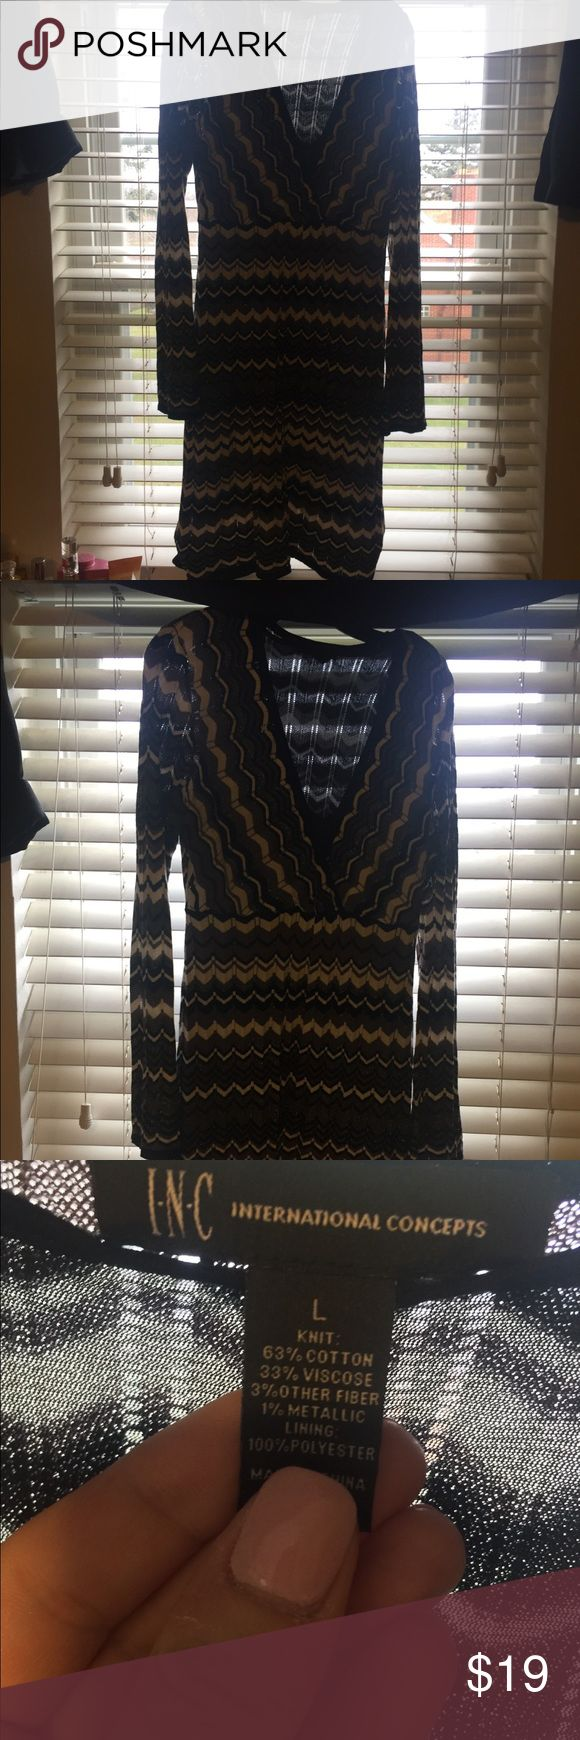 Inc Large Winter knit dress Sparkly fun missoni like knit design on this INC dress. Size large, but I feel INC runs on the smaller side. Black, white, and pattern. Lined with a fine black fabric. I have enjoyed wearing this dress. Throw on some black tights and boots and go! INC International Concepts Dresses